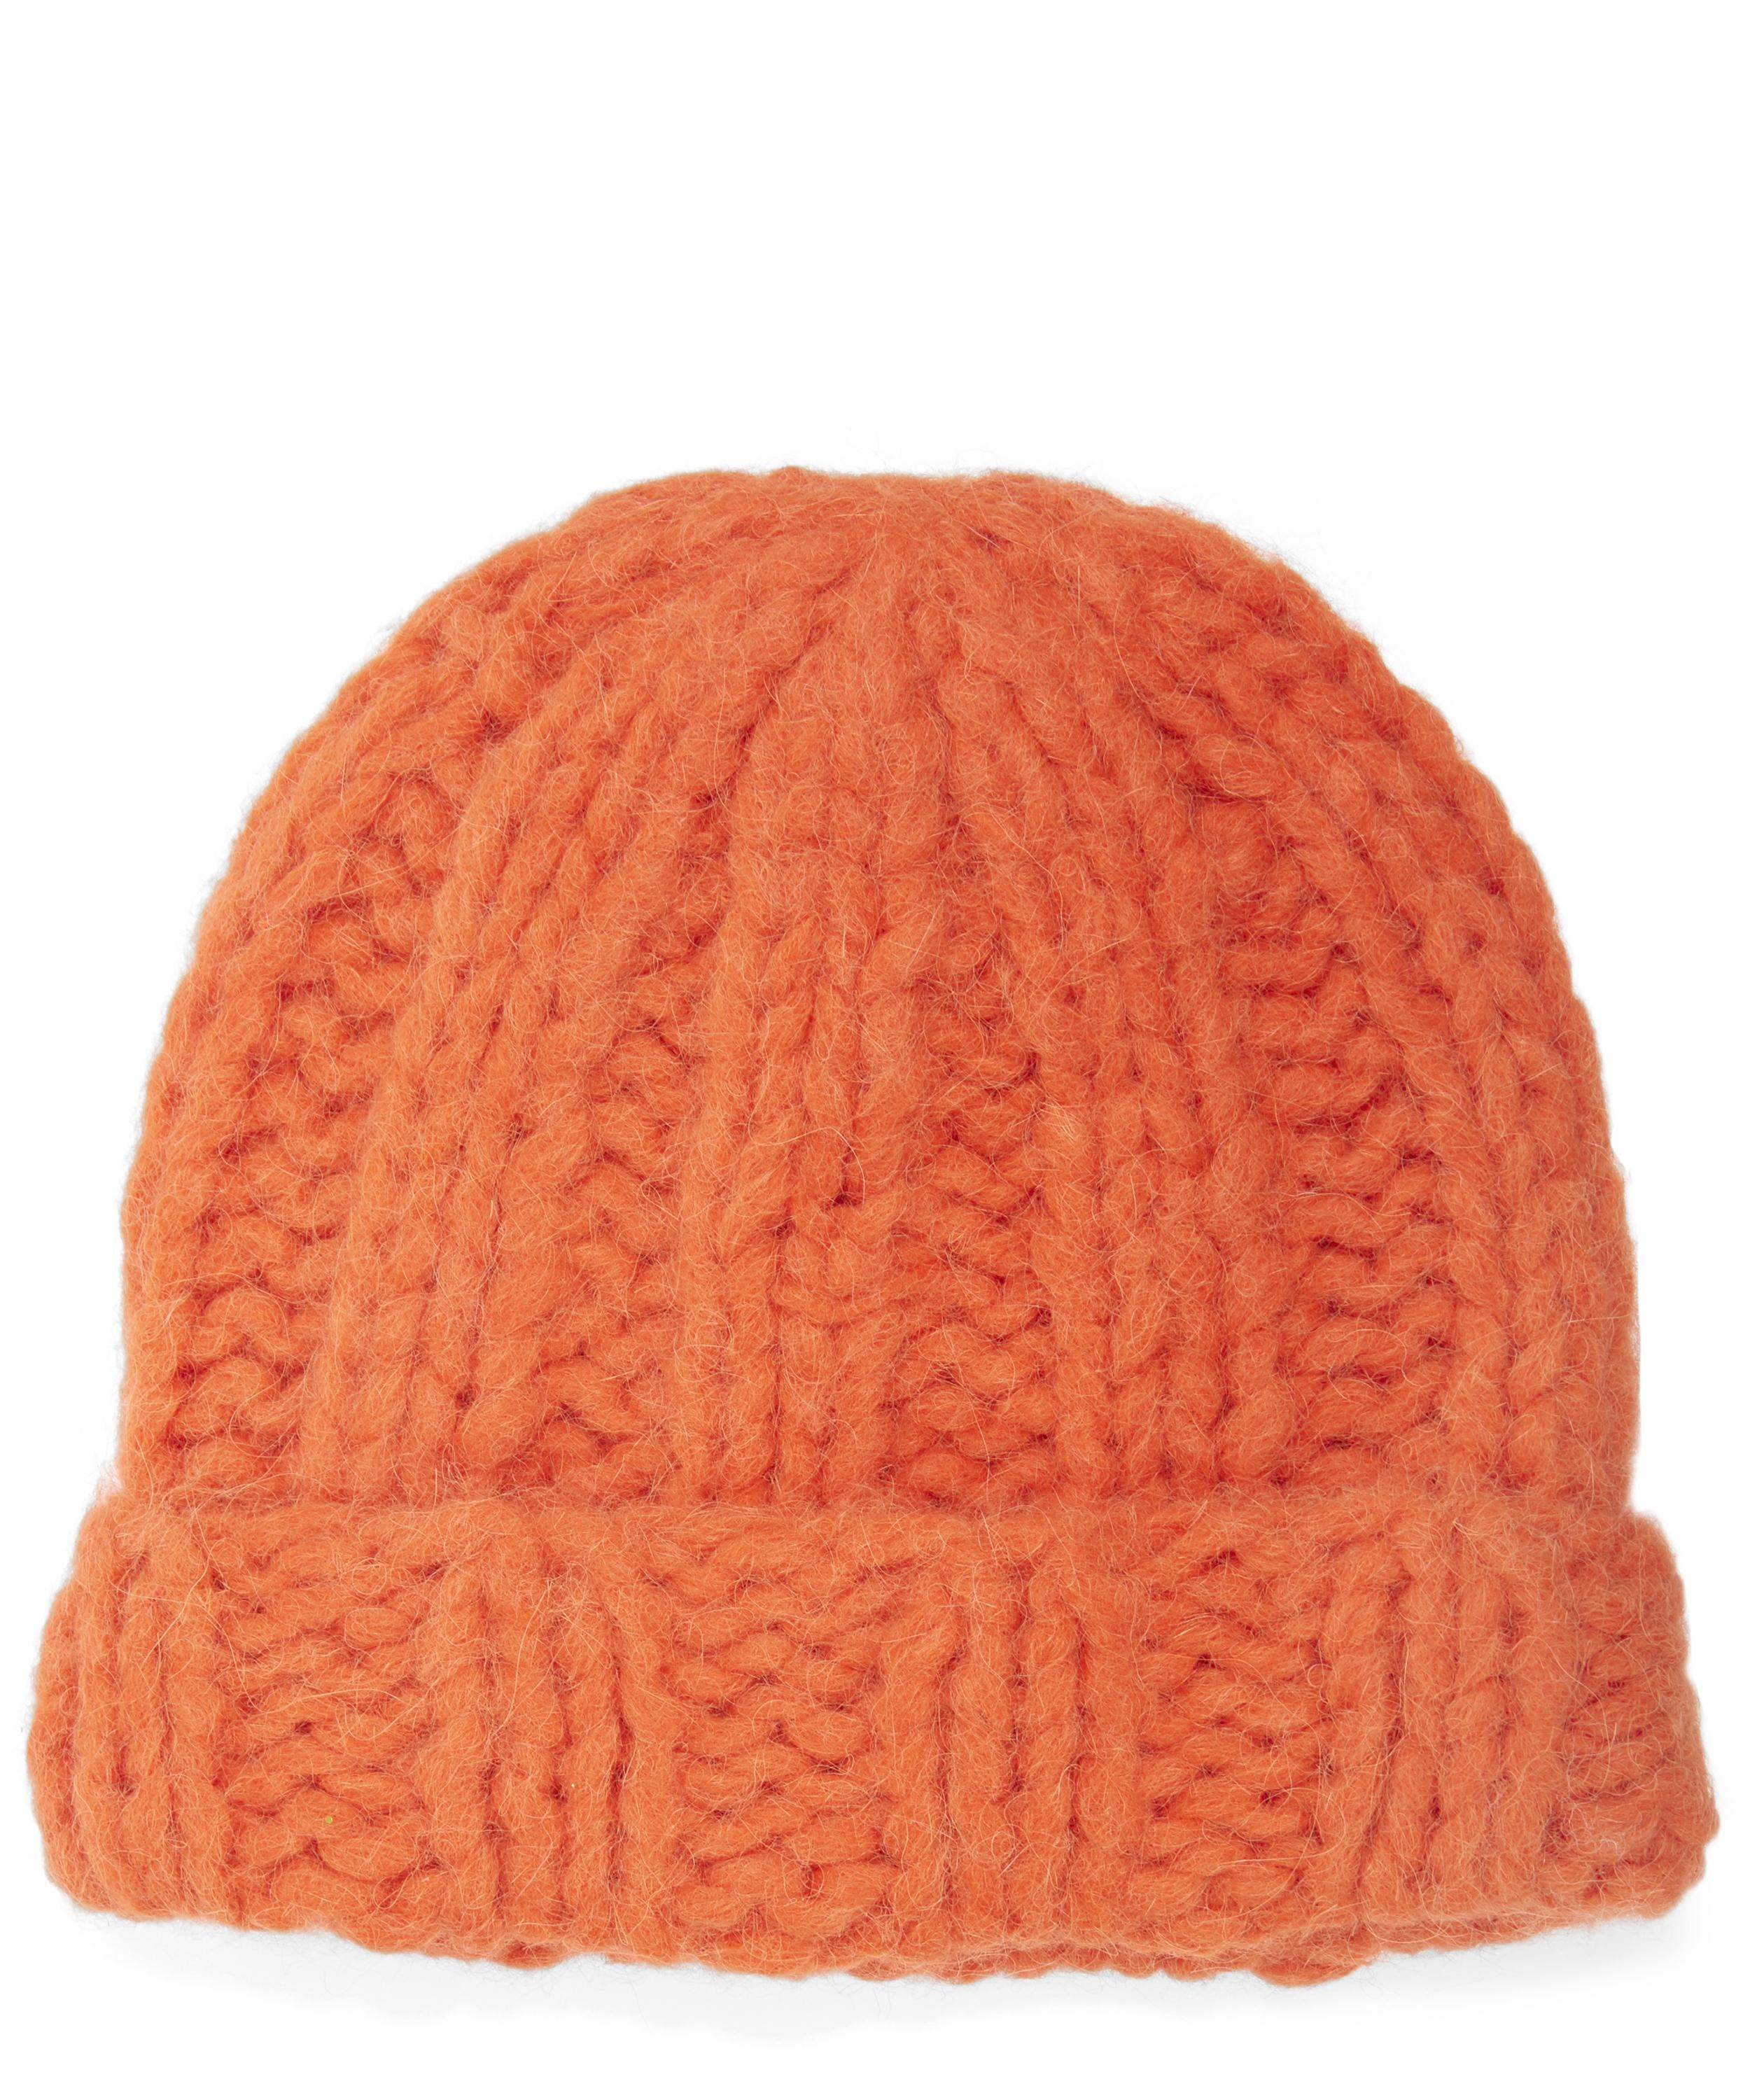 db9d3184395c Lyst - Acne Studios Jewel H Alpaca Knitted Beanie Hat in .